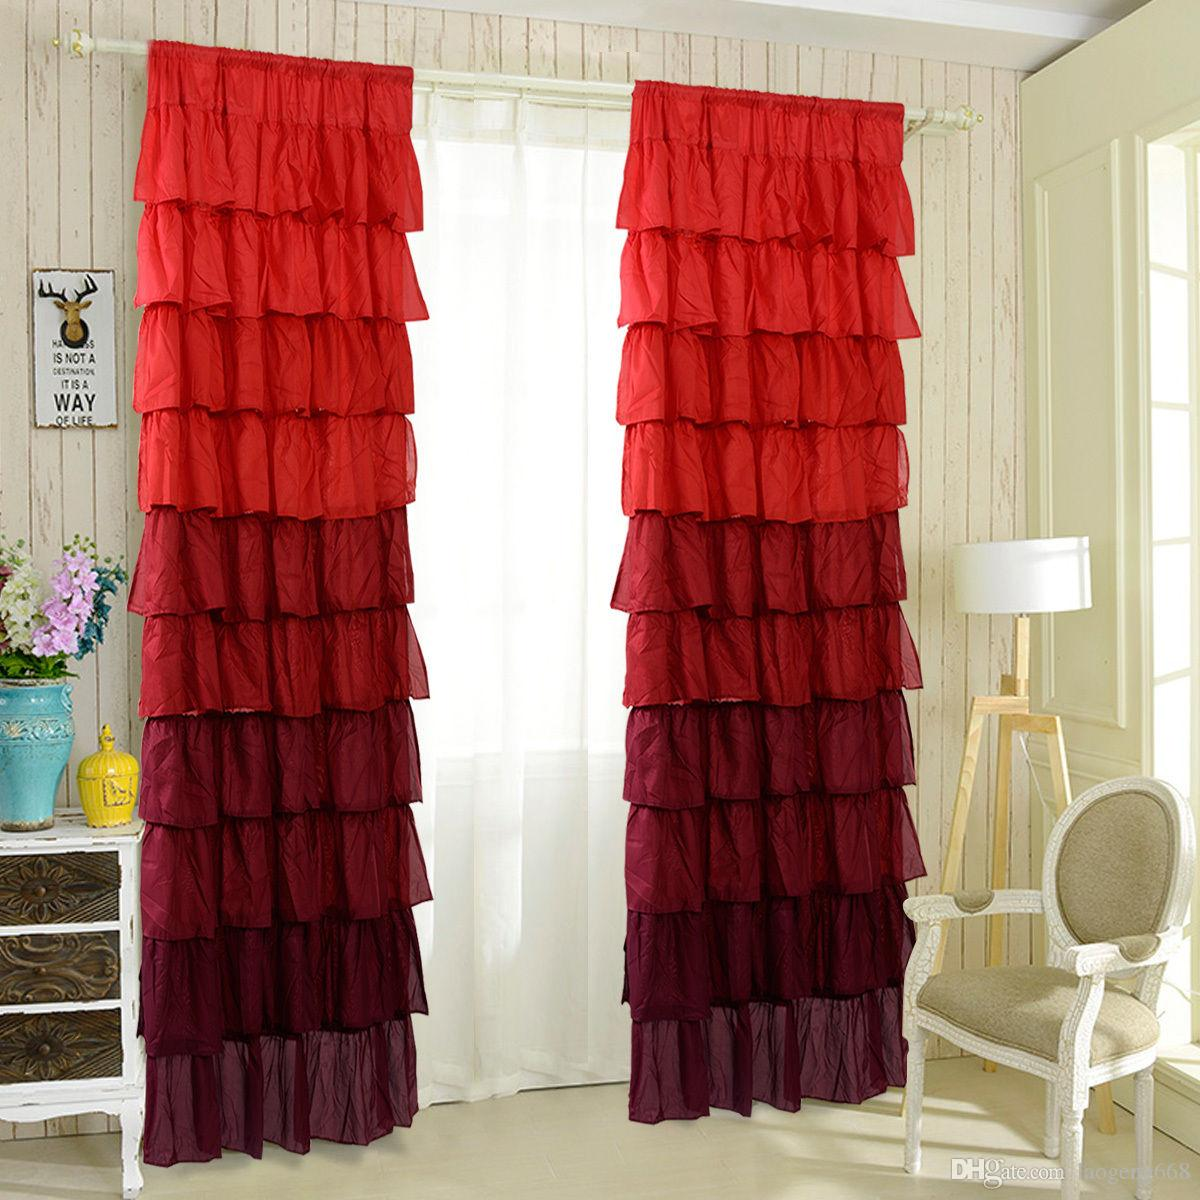 curtain panels with inspiration of sheer curtains hang designs